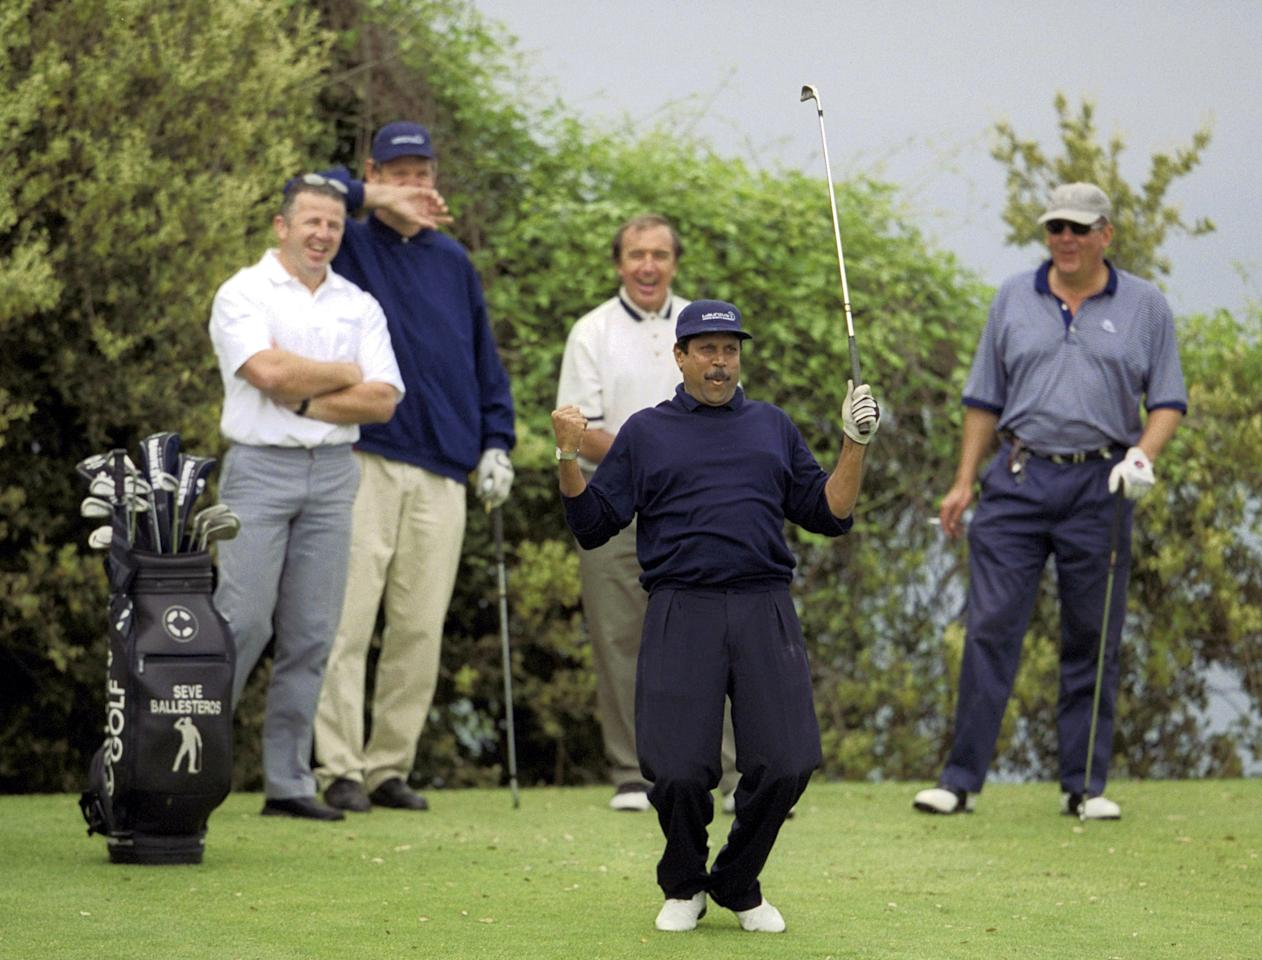 21 May 2001:  World Sports Academy founder member and former cricketer Kapil Dev celebrates during the Laureus Golf Challenge at the Monte Carlo Golf Club prior to the Laureus World Sports Awards in Monaco. Mandatory Credit: David Cannon/ALLSPORT